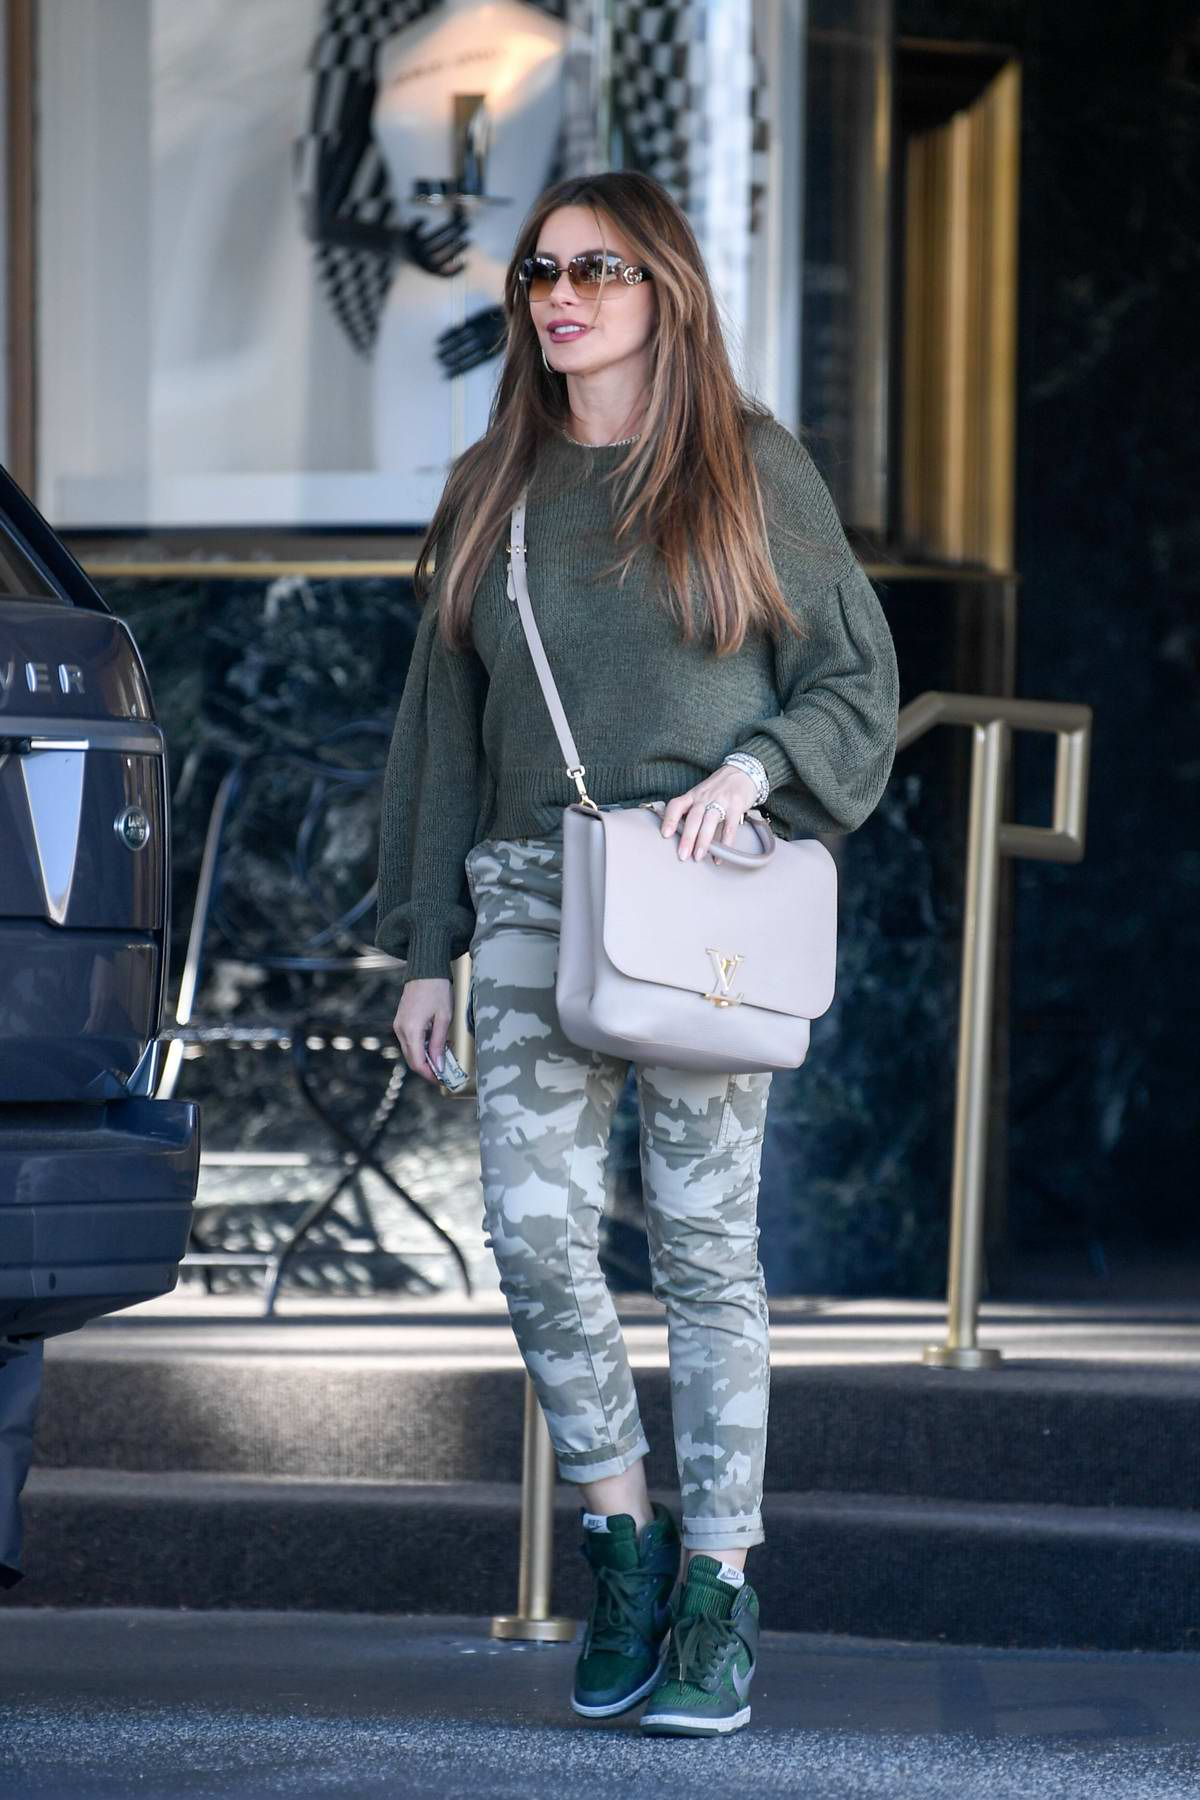 Sofia Vergara looks stylish in a green sweater, camo pants and Nike trainers while out shopping at Saks Fifth Avenue in Los Angeles